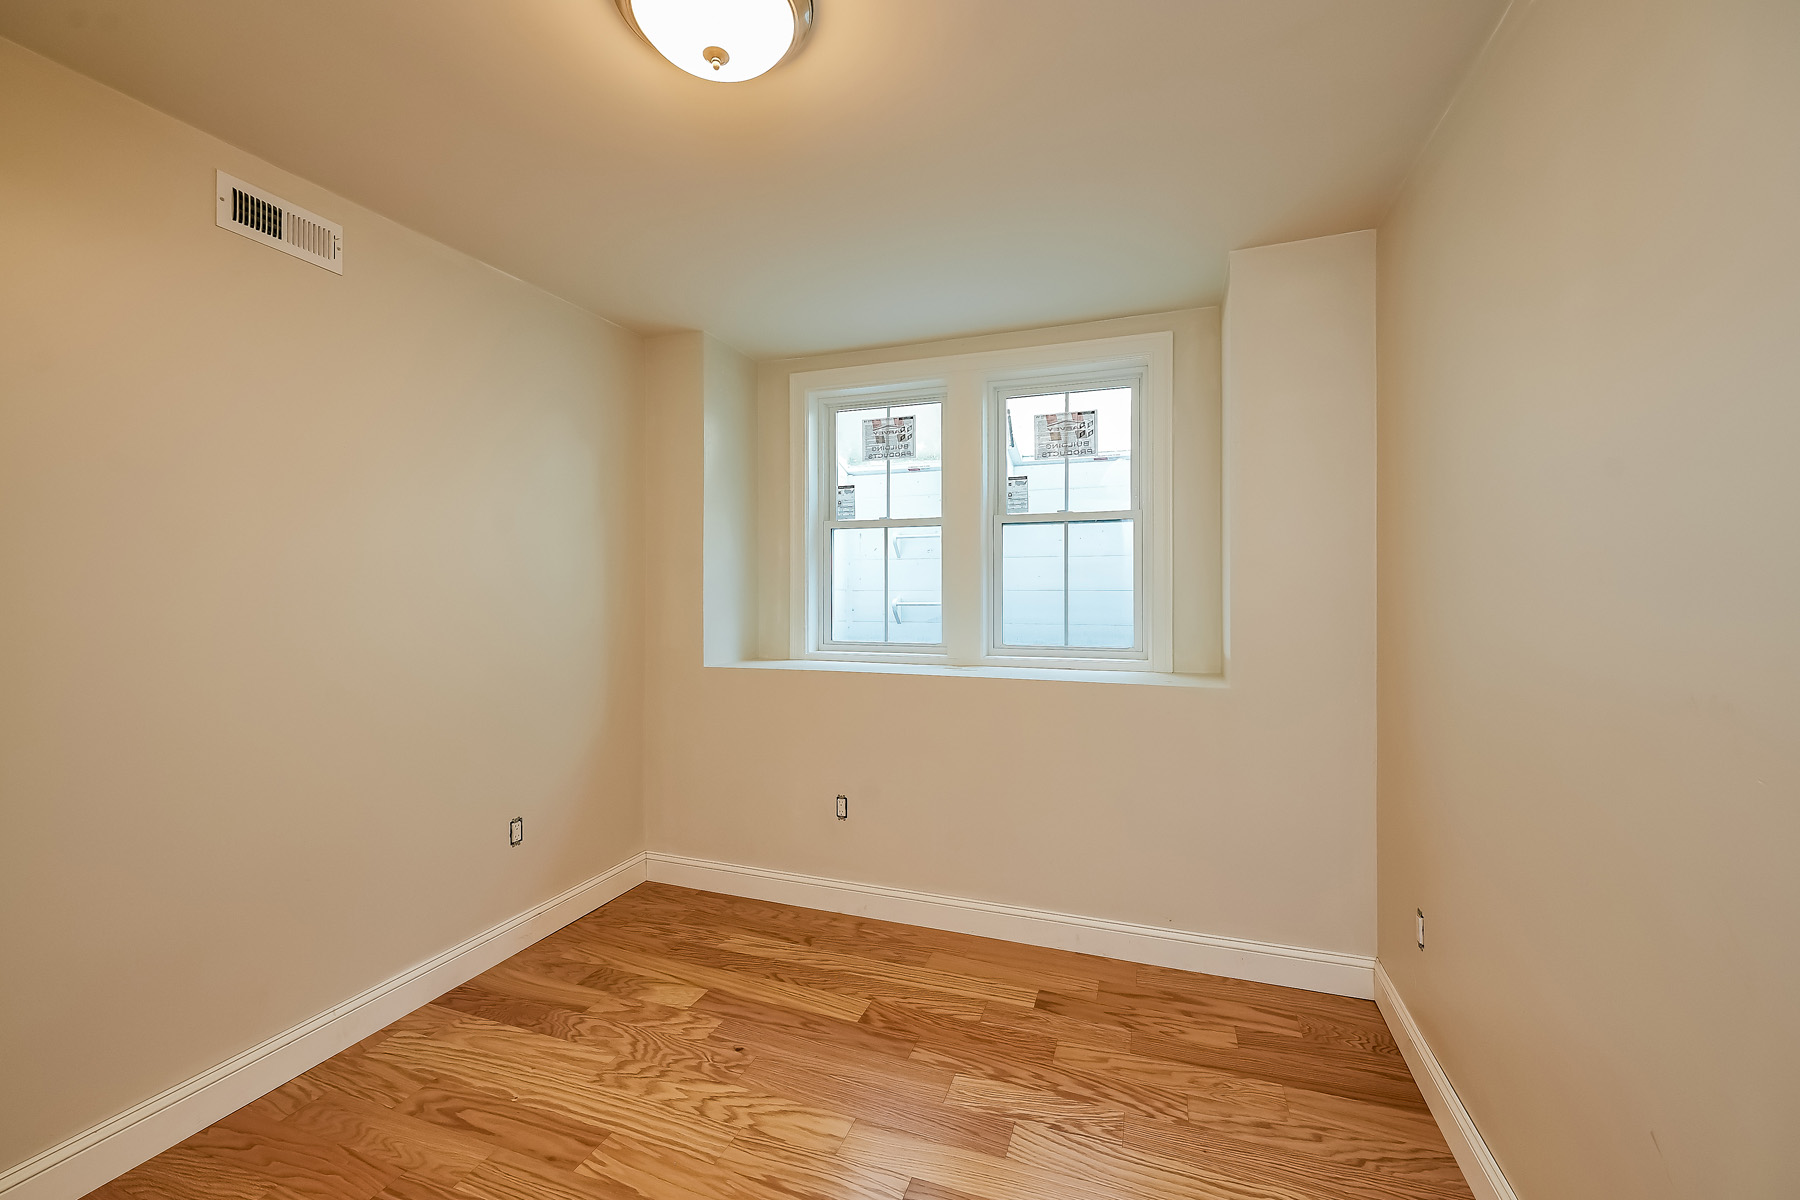 Additional photo for property listing at 41 Cypress St, Newton  Newton, Massachusetts 02459 United States